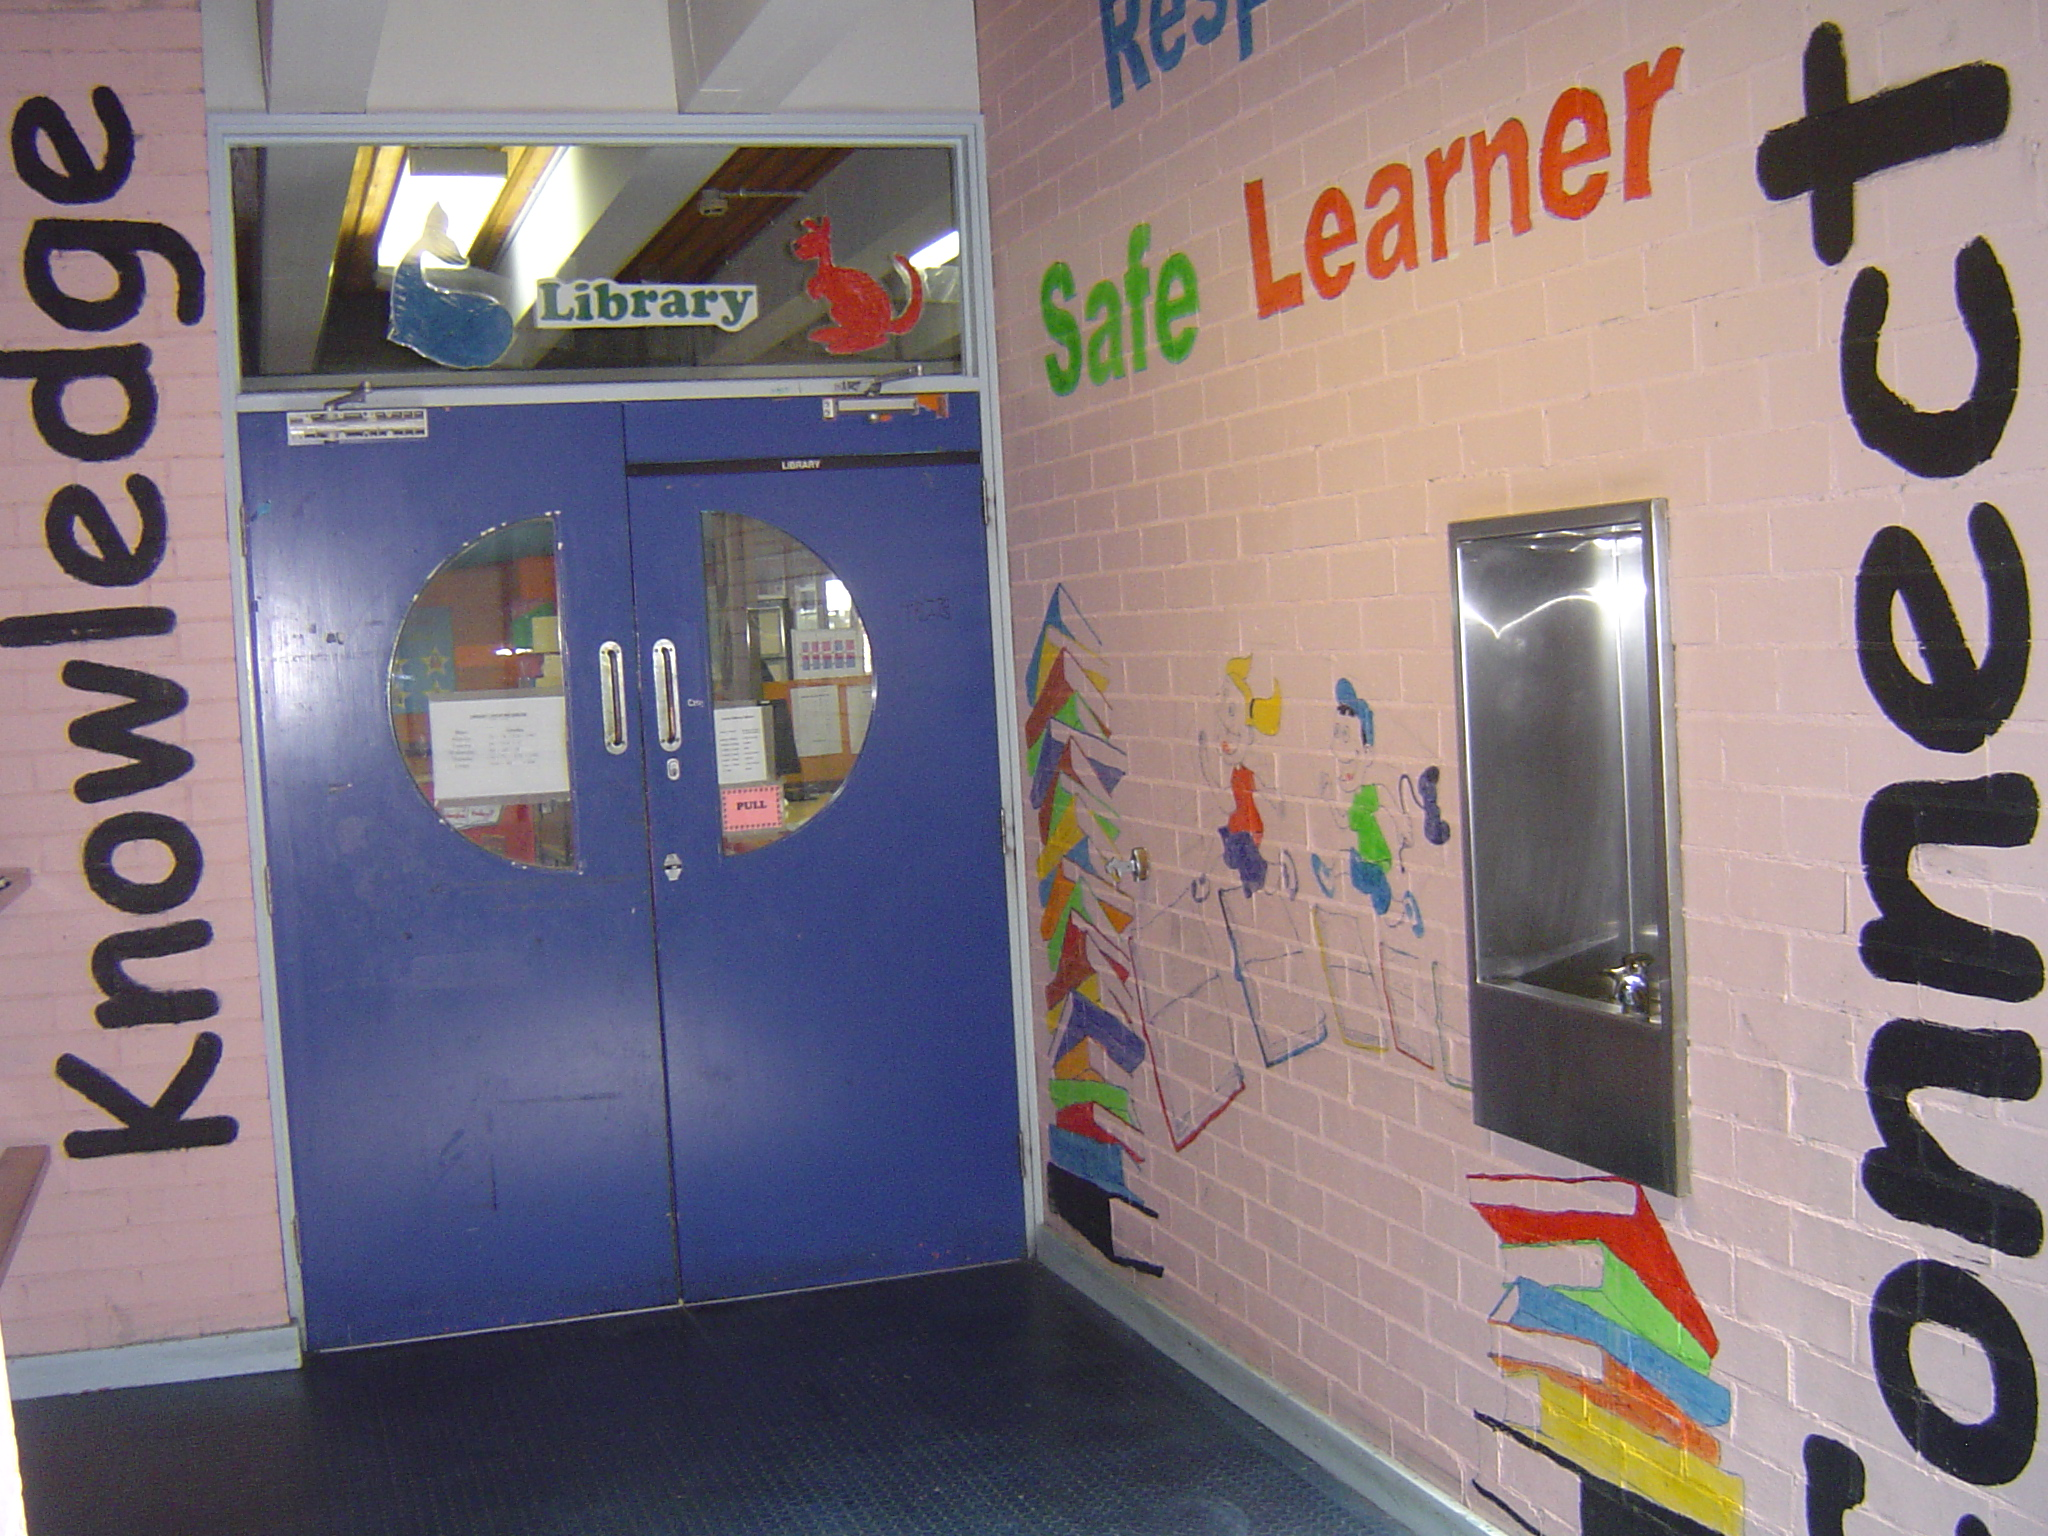 Welcome to Junior library which has a blue door entrance. Children love to rush in for stories and everyone can immerse themselves in a sea of knowledge.